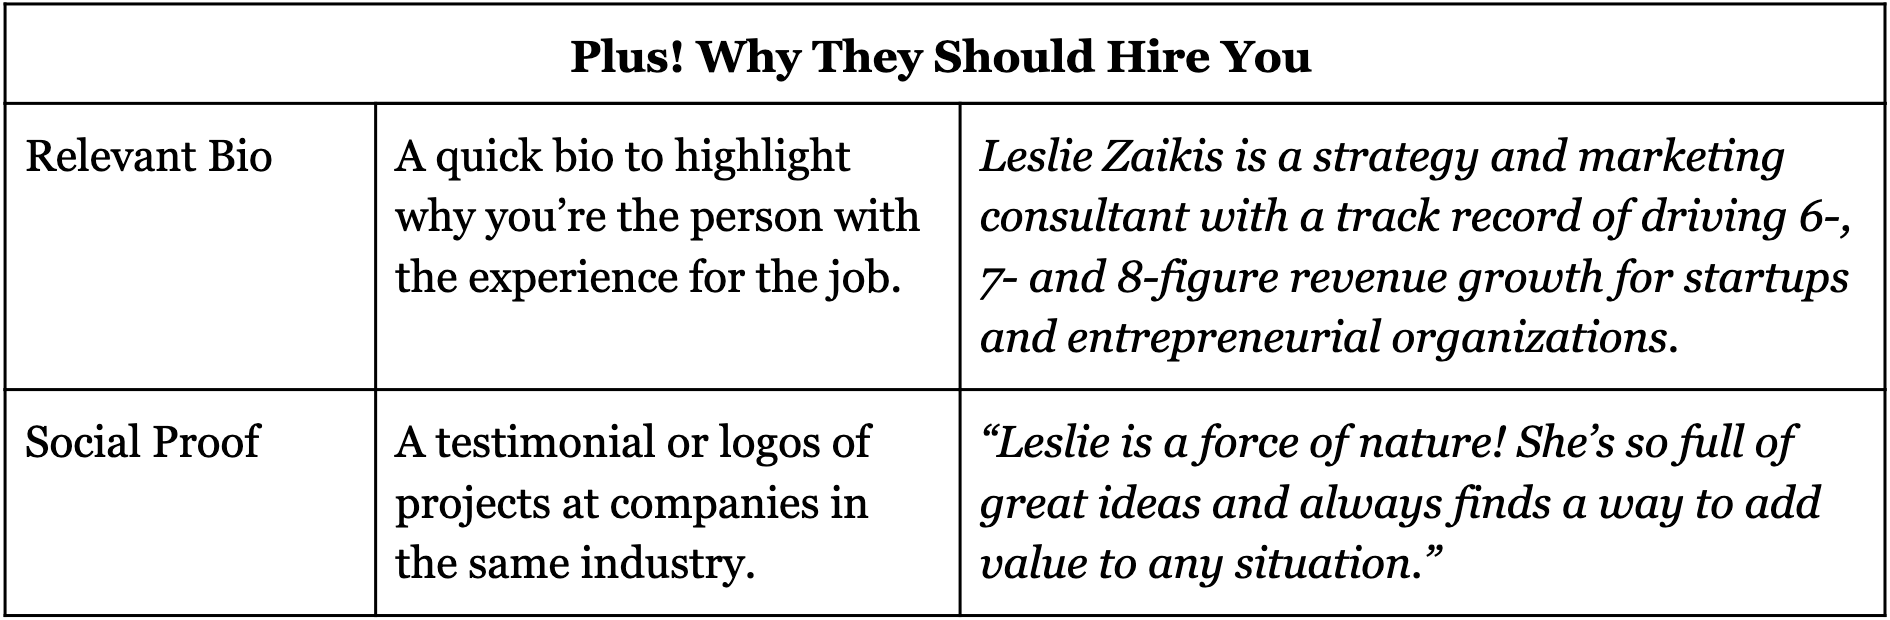 Why They Should Hire You.png